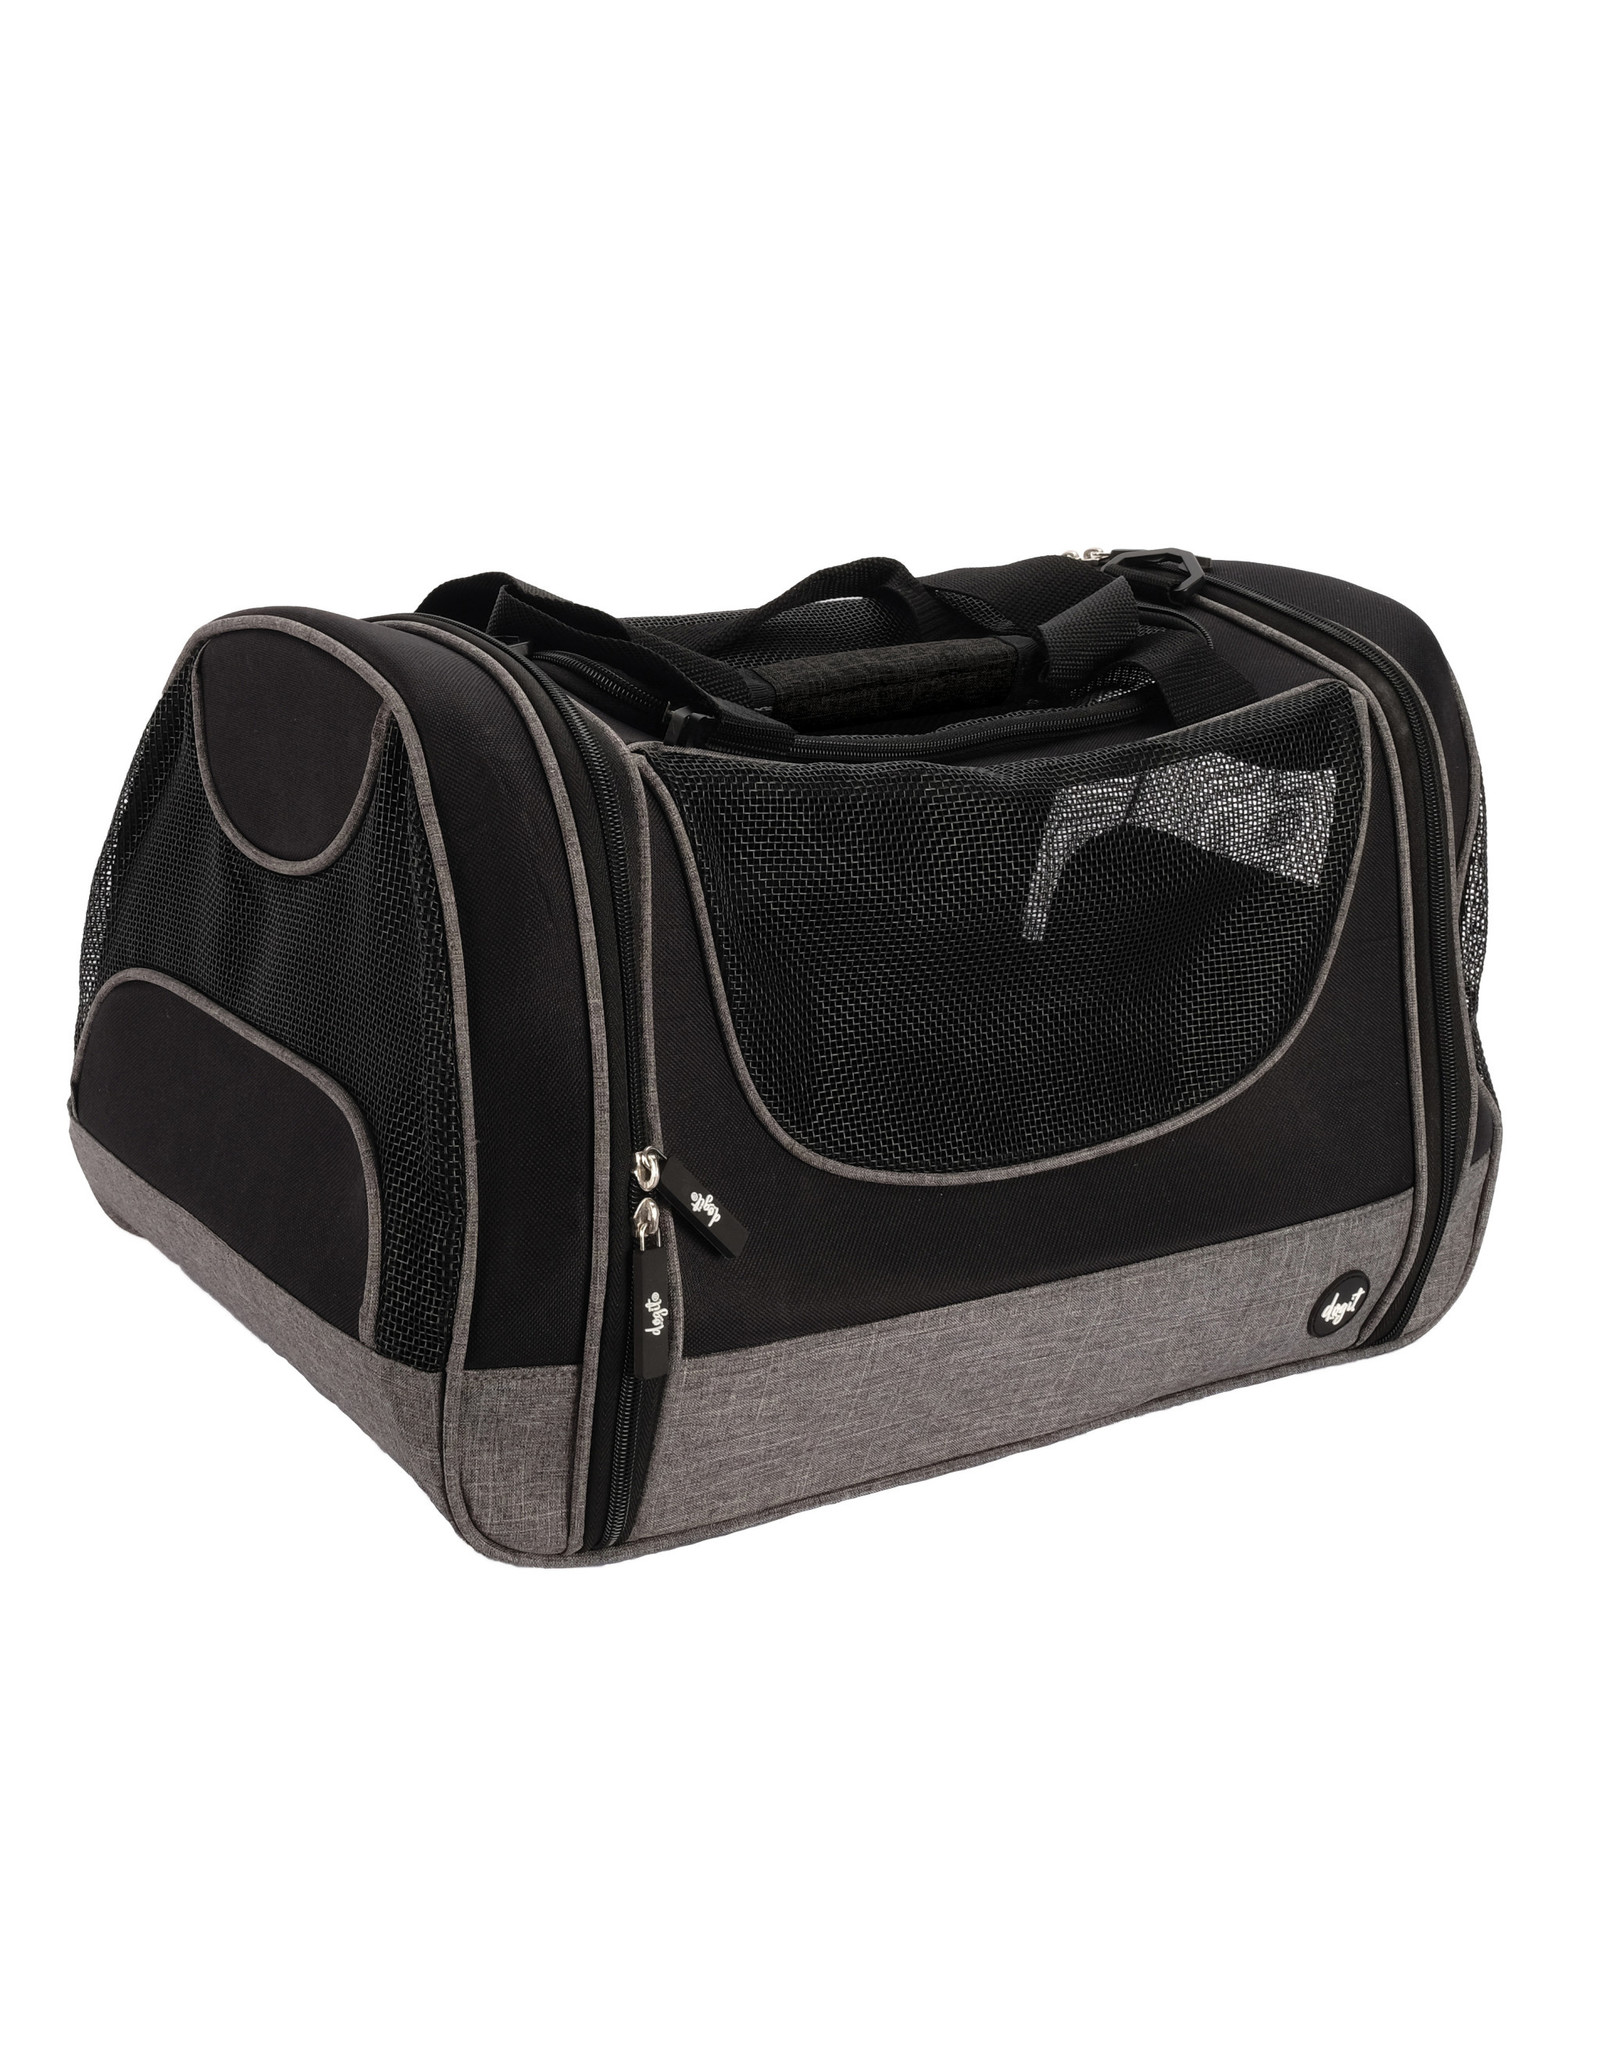 DogIt Soft Carrier Tote Carry Bag Gray